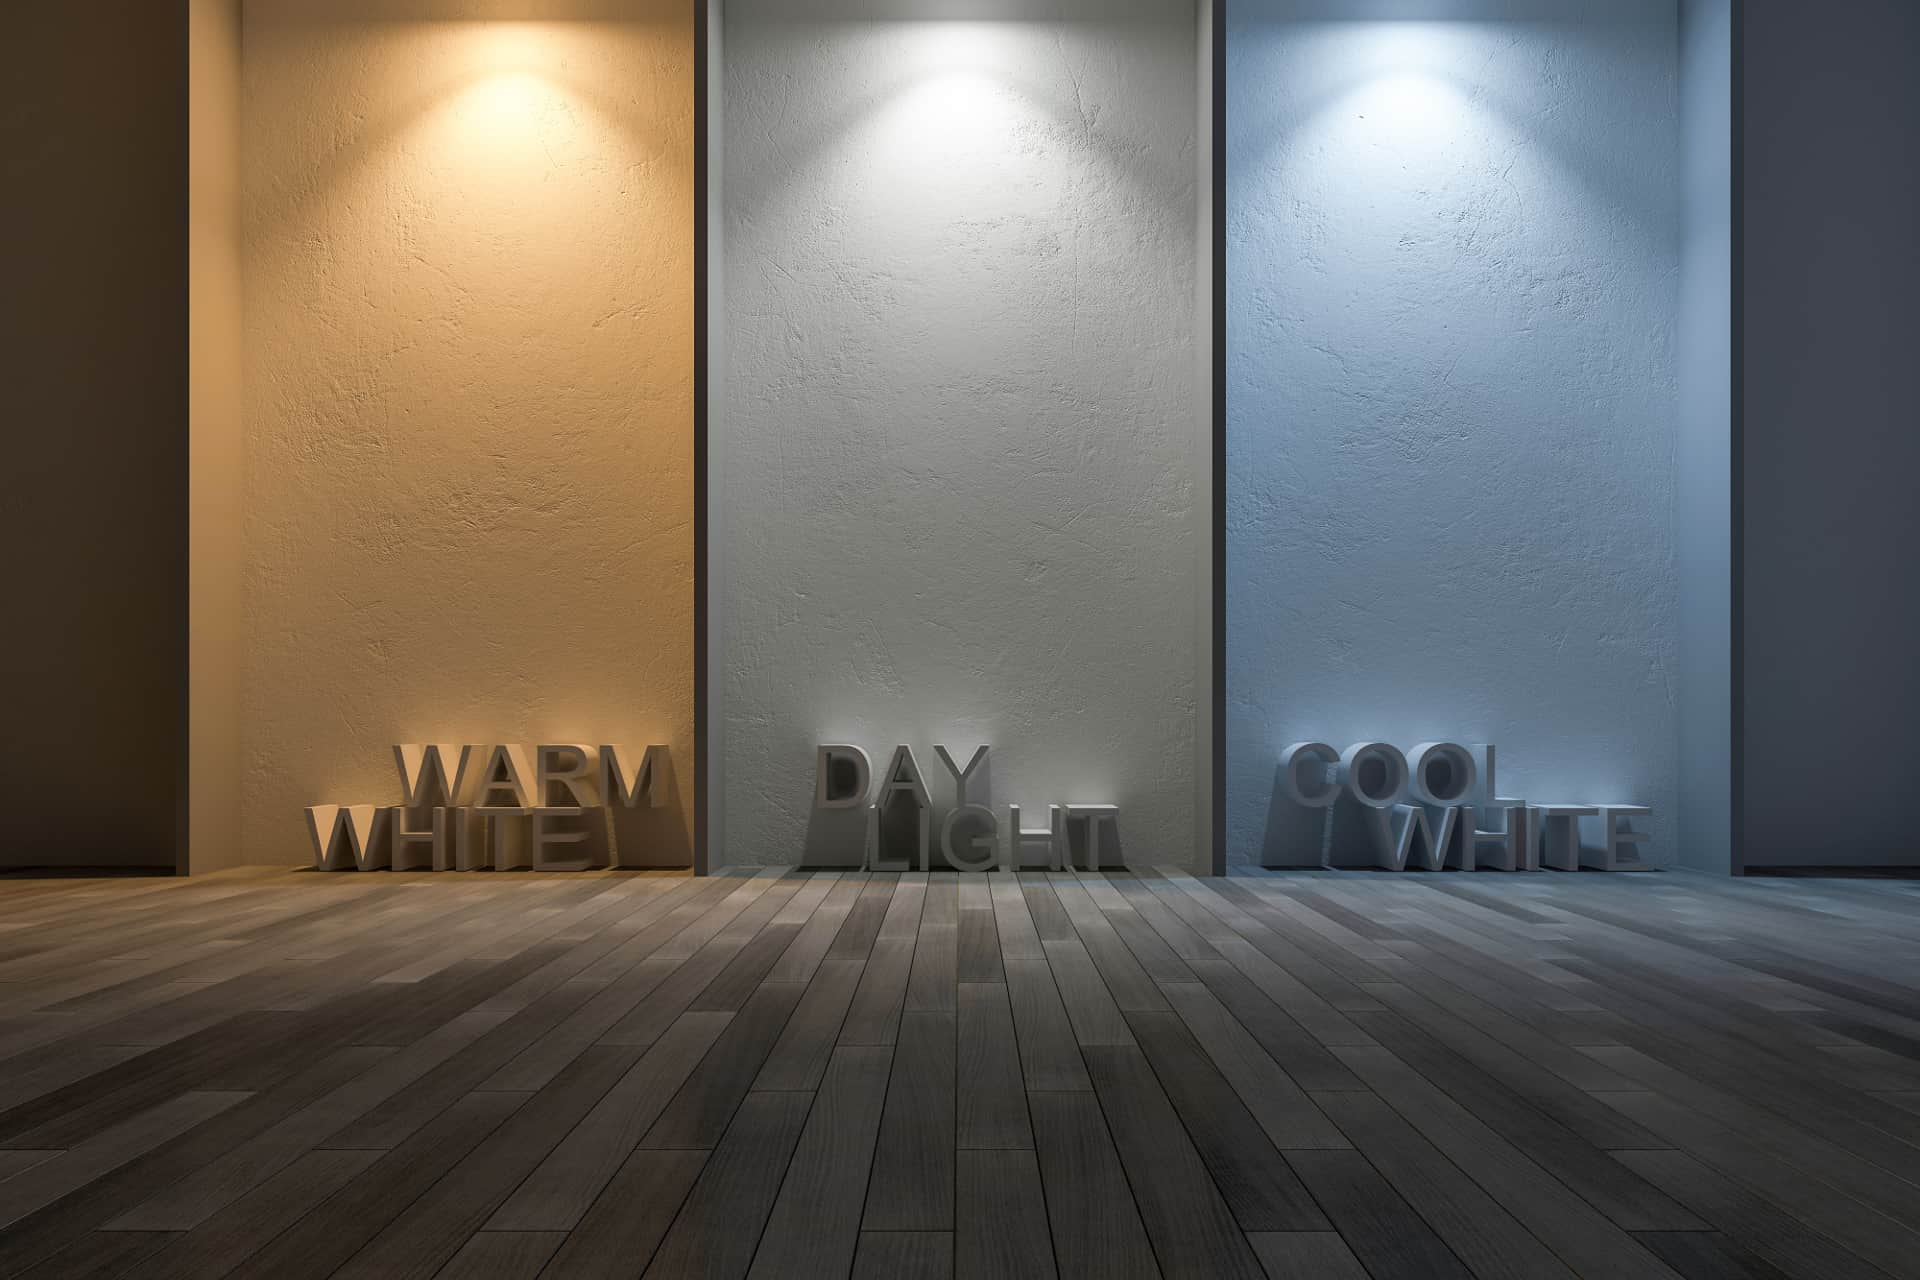 Led Color Temperature In Kelvin All You Need To Know